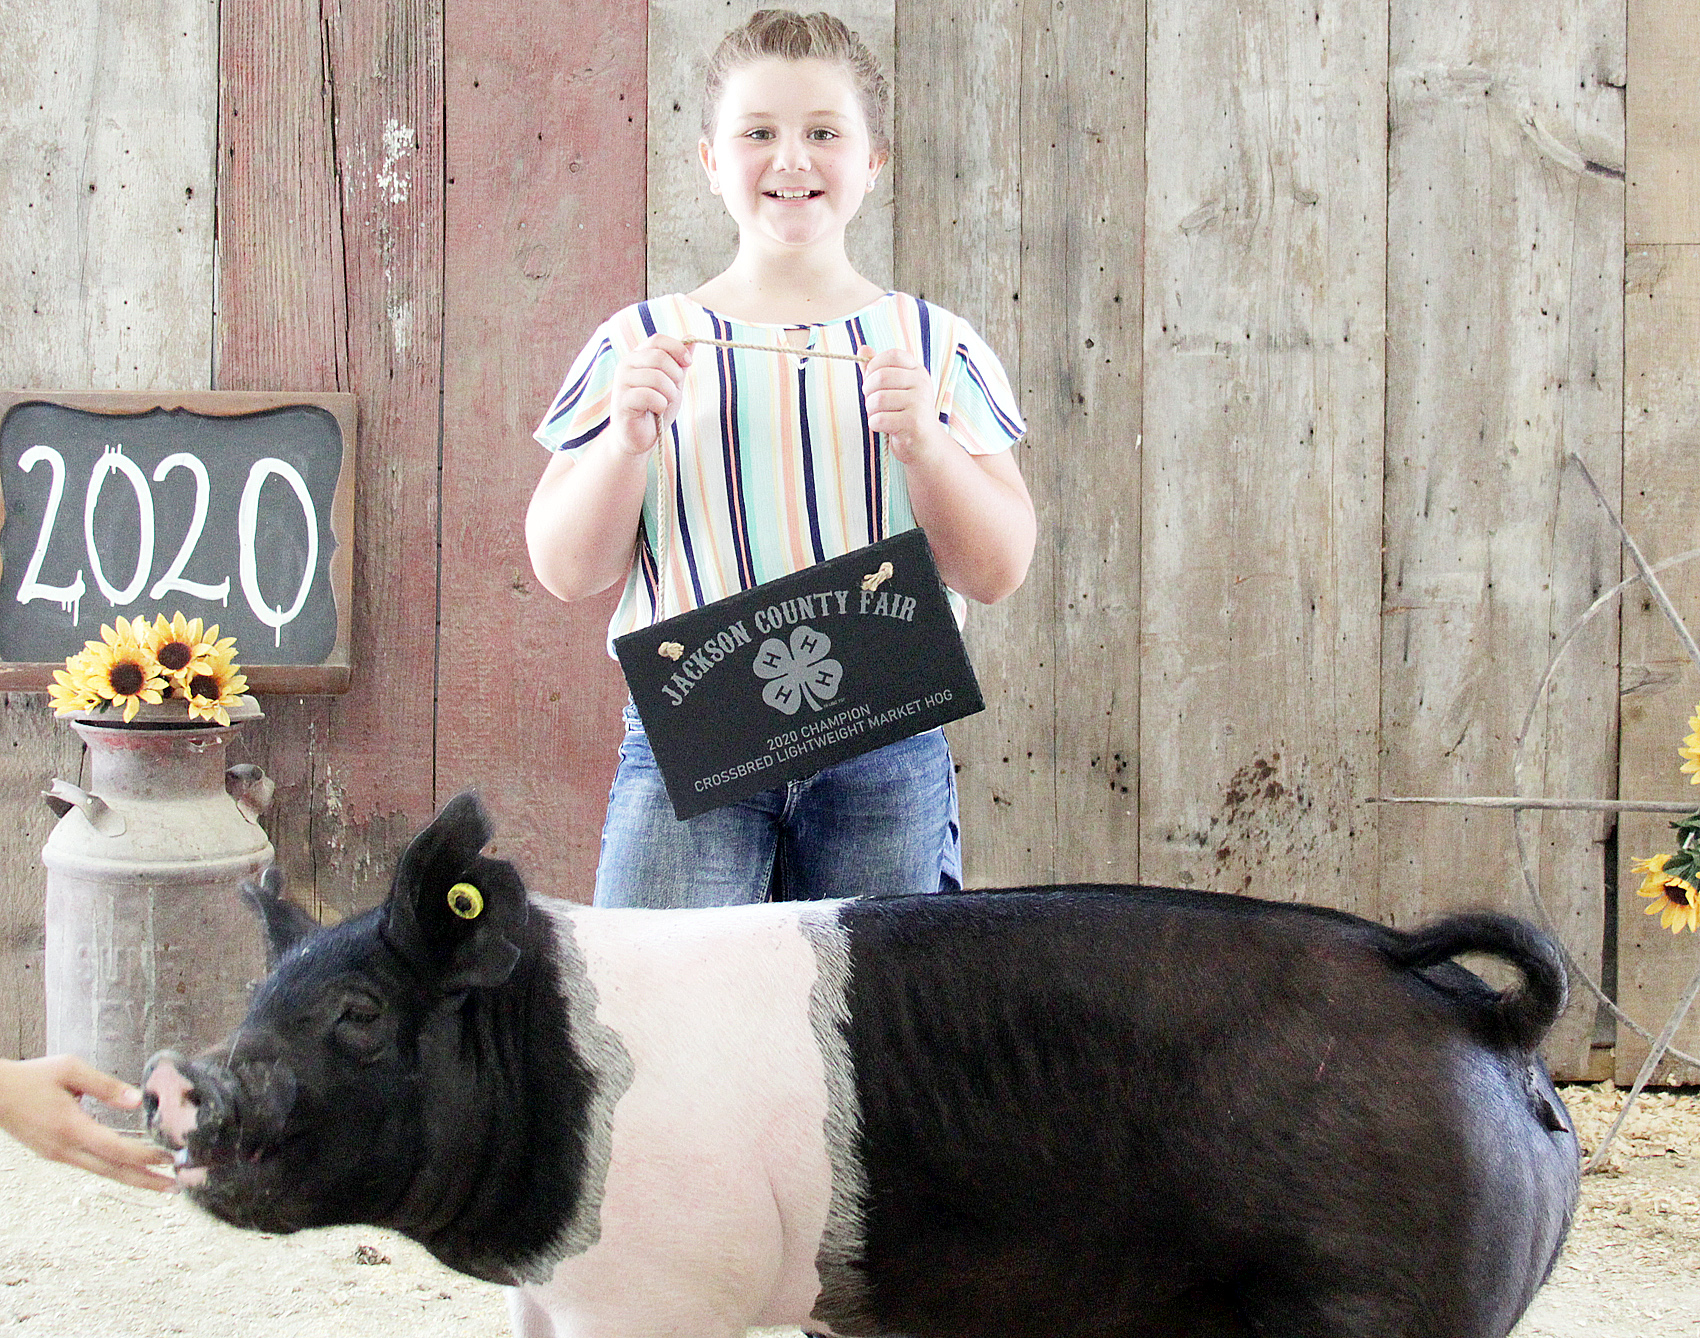 MaKenna Tyler of the Mayetta Mustangs 4-H Club showed the Champion light weight crossbred market hog at the 2020 Jackson County Fair.